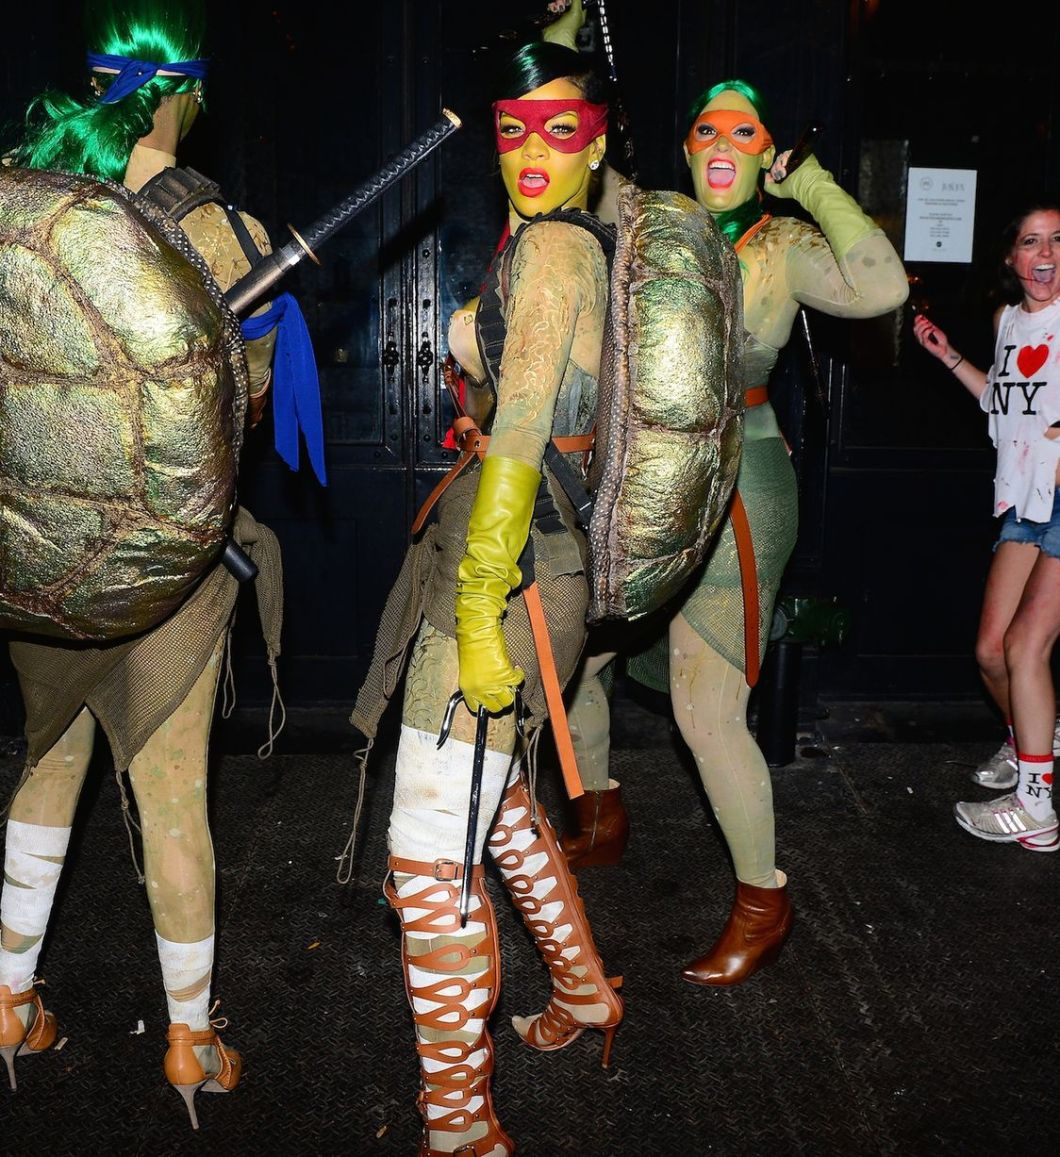 Rihanna as a Ninja Turtle